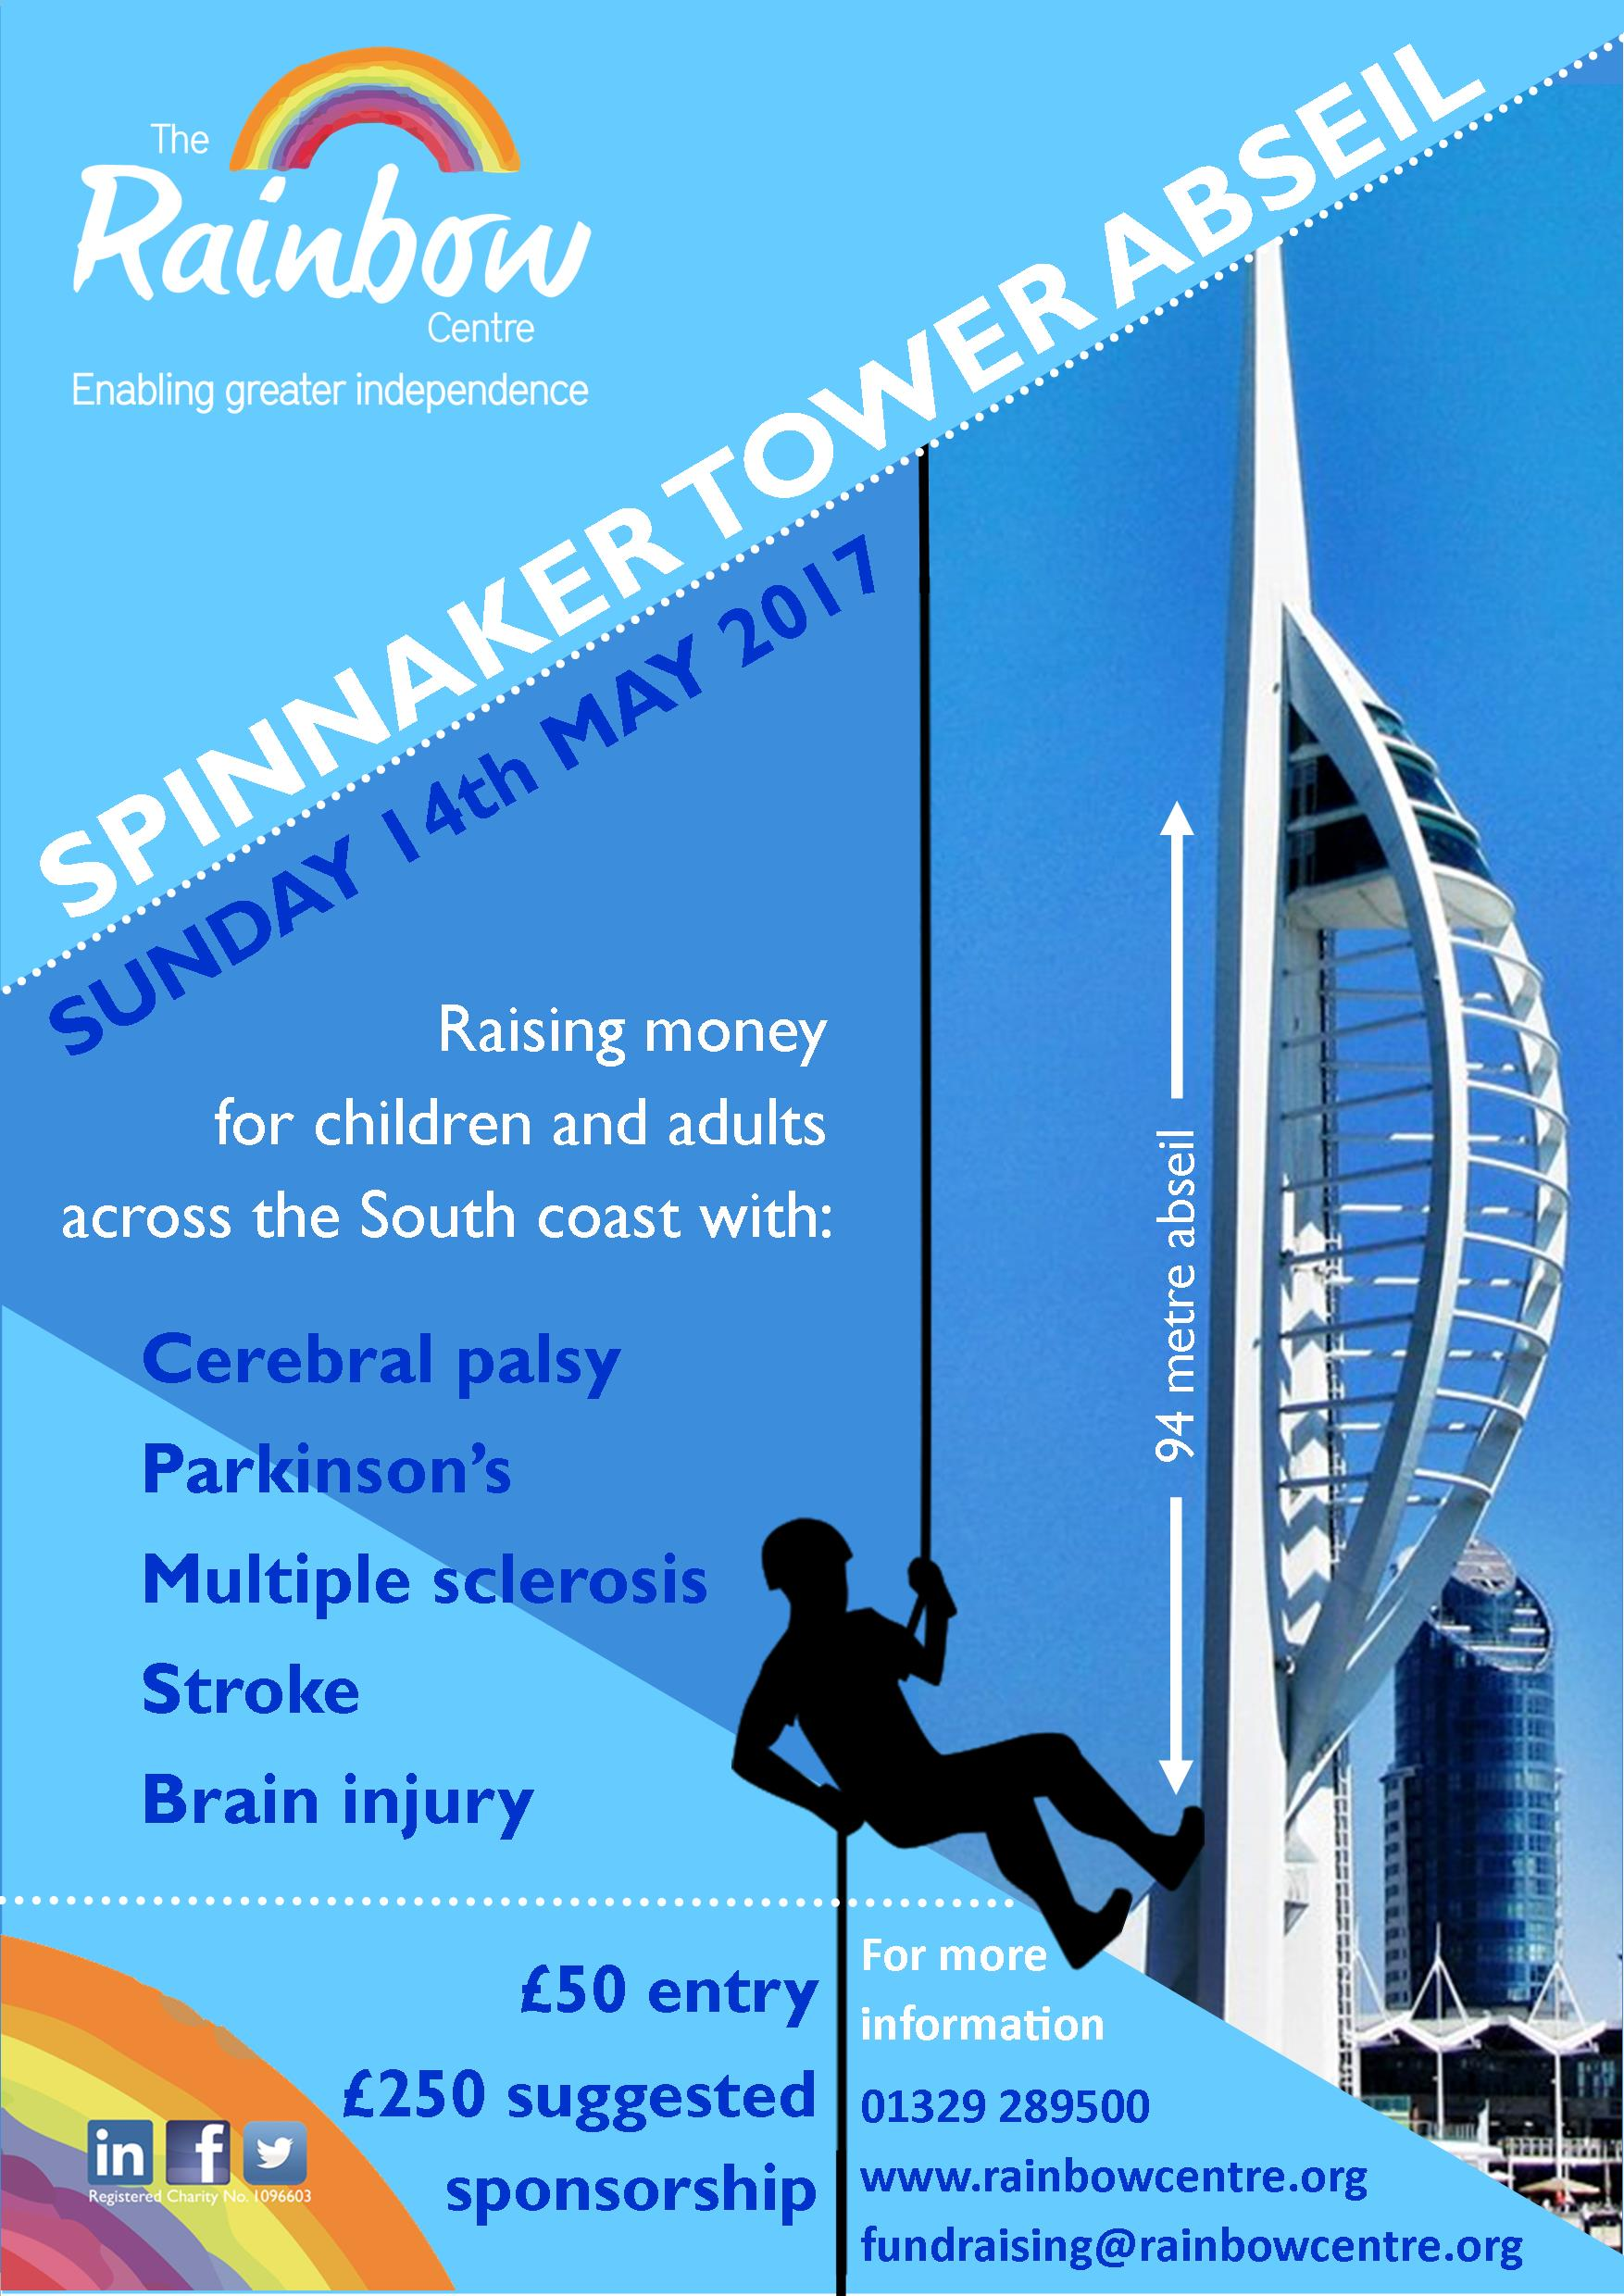 Spinnaker Tower Charity Abseil poster in aid of The Rainbow Centre